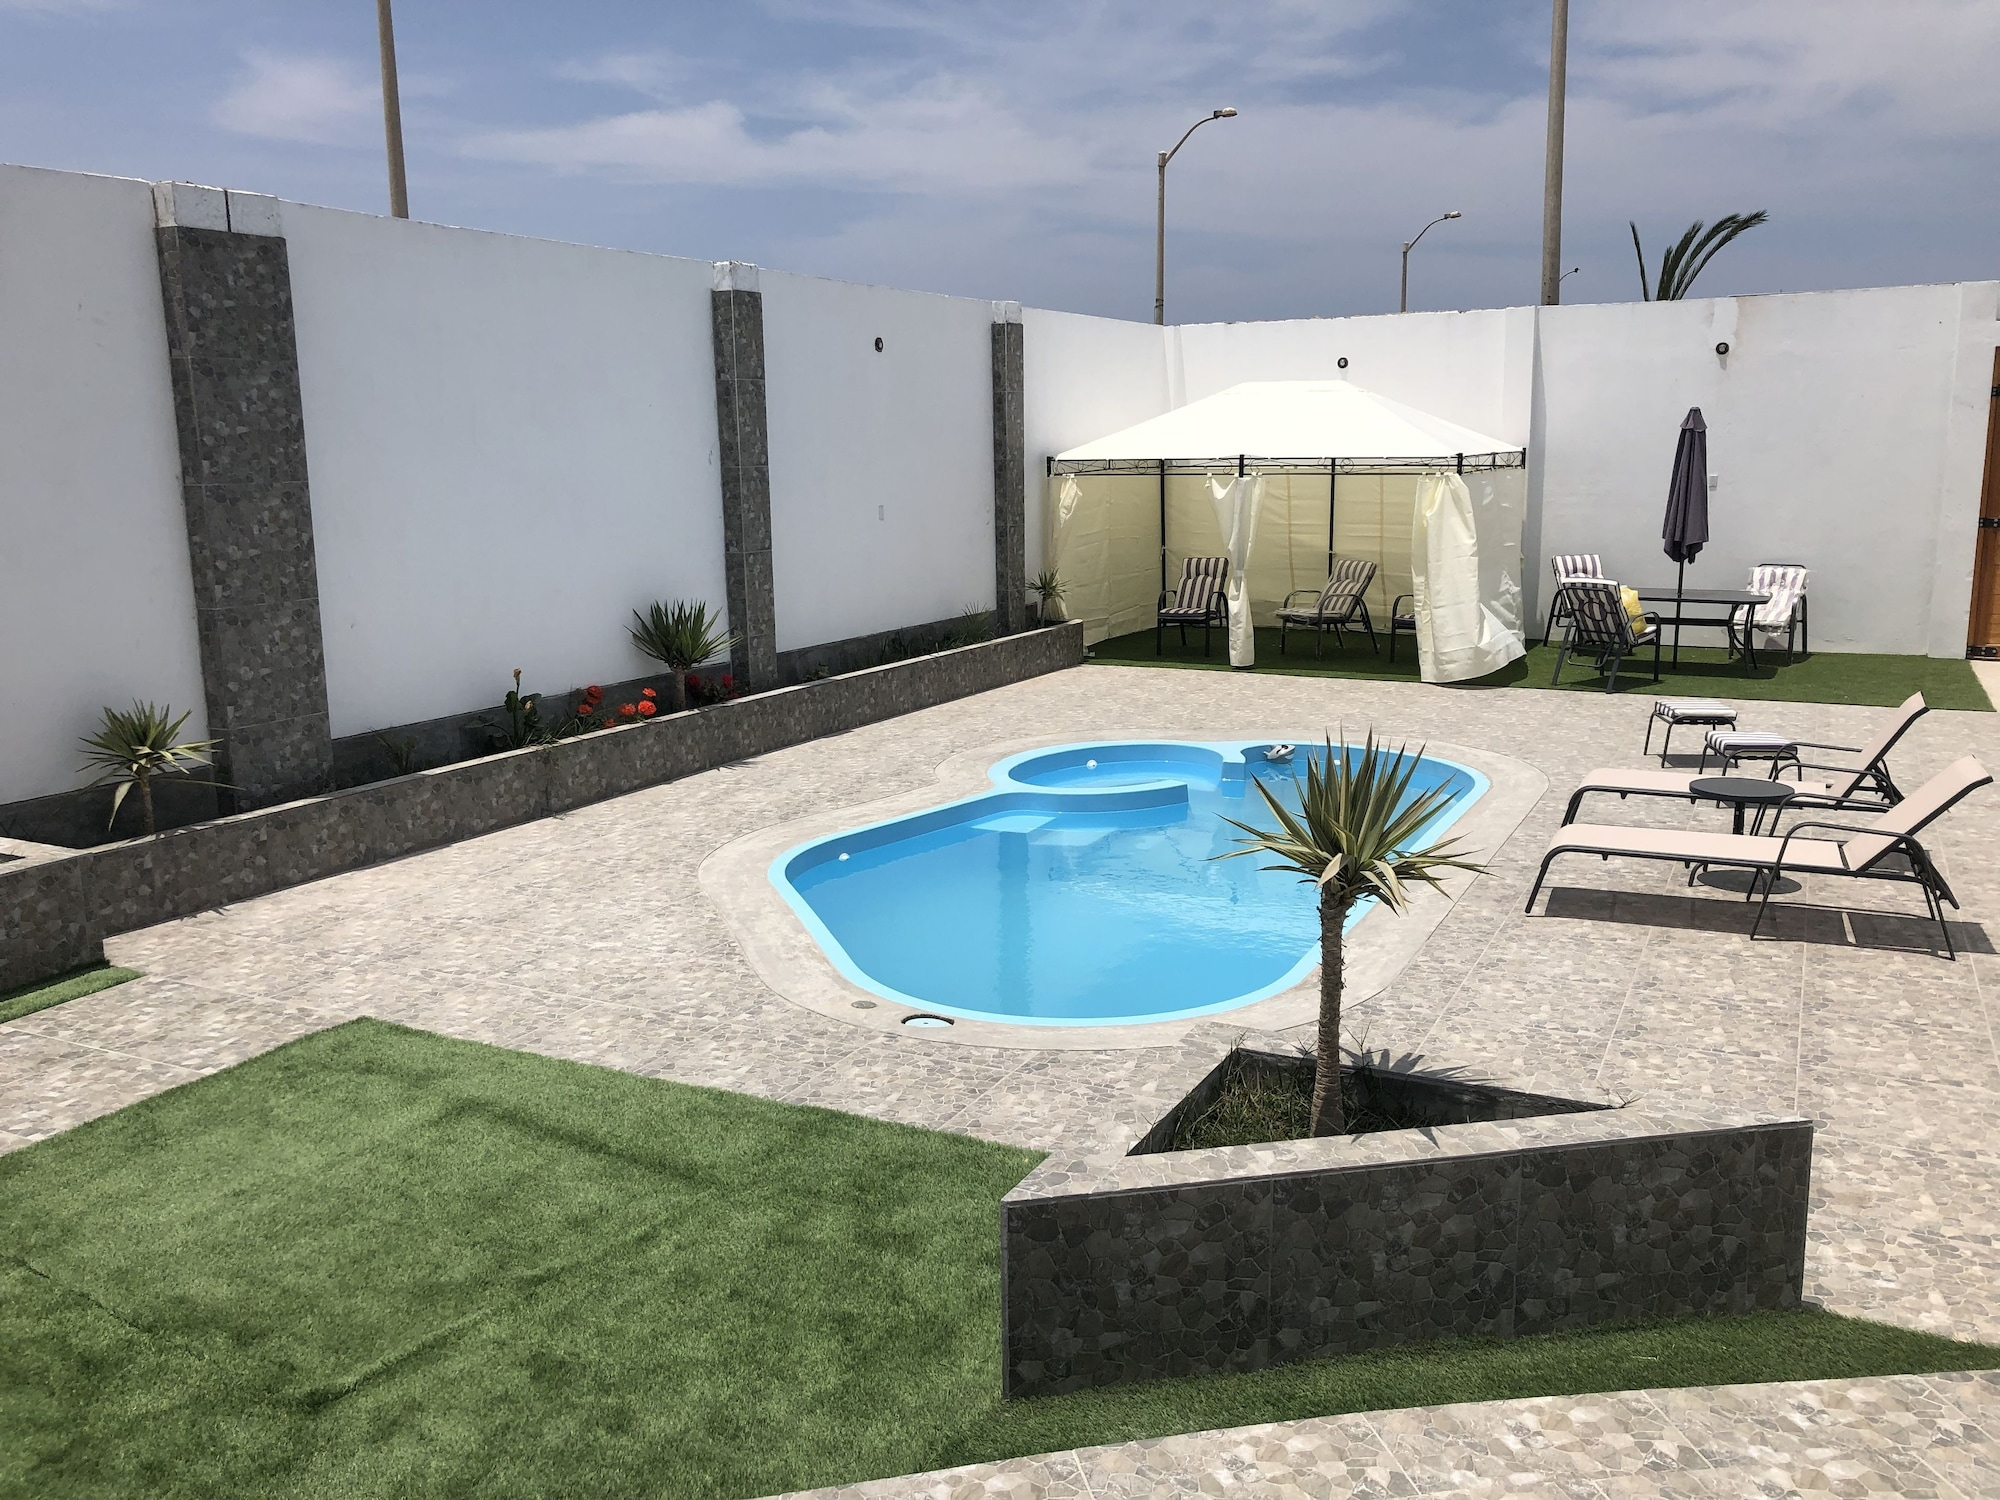 New House by The Beach, Pisco